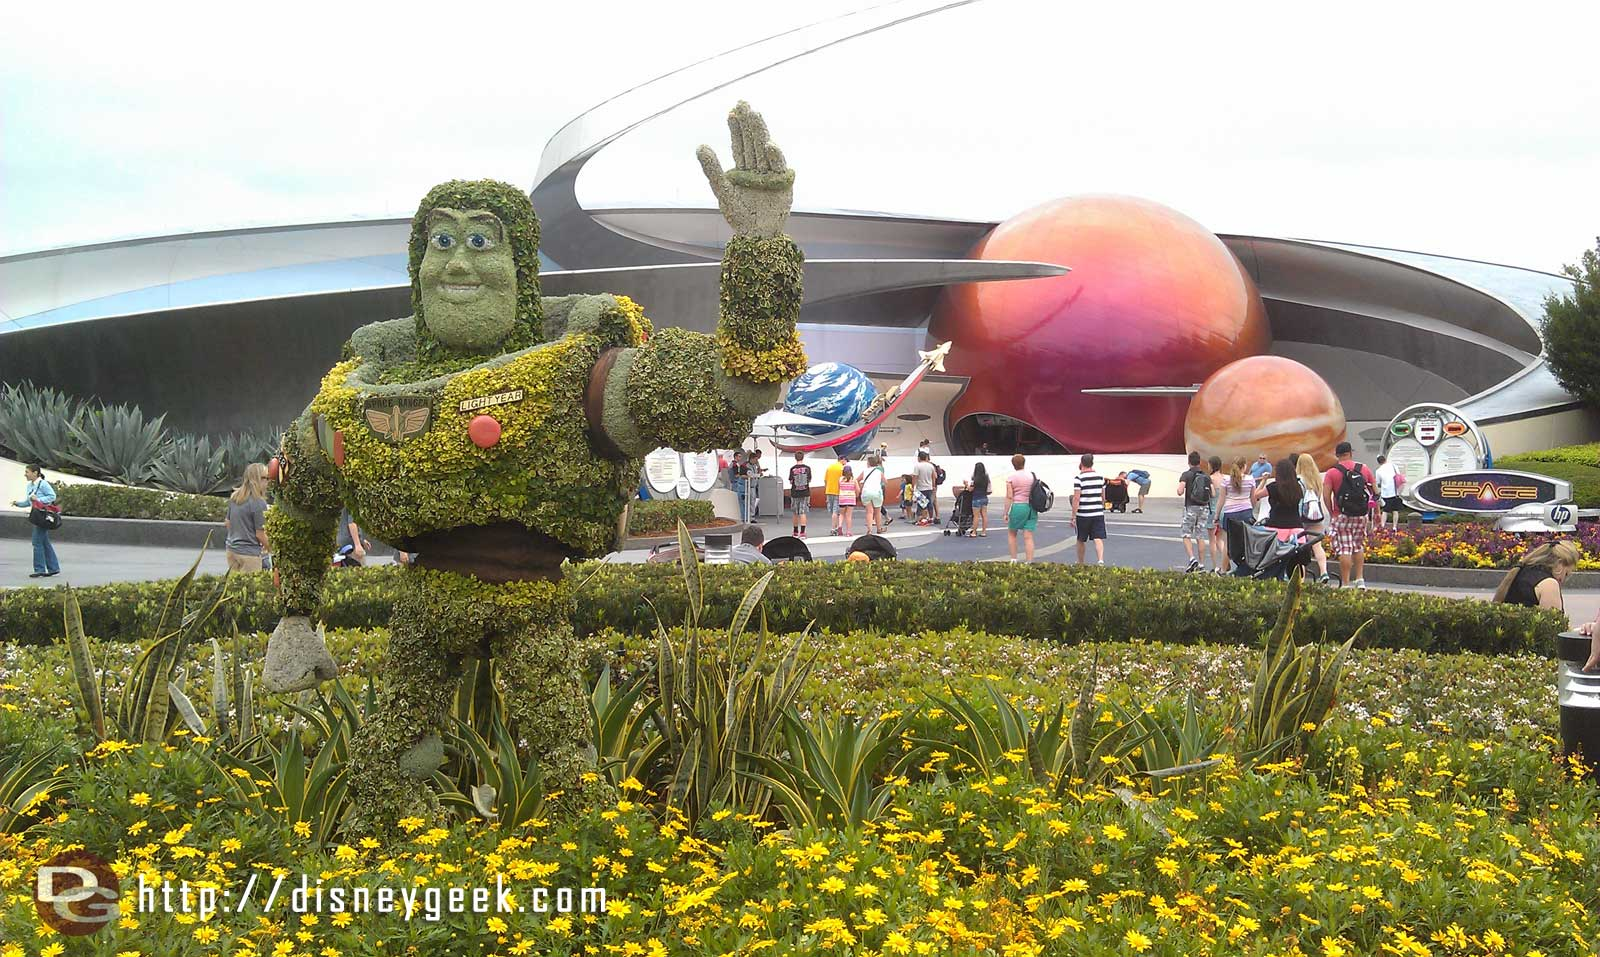 Buzz topiary out front of Mission Space